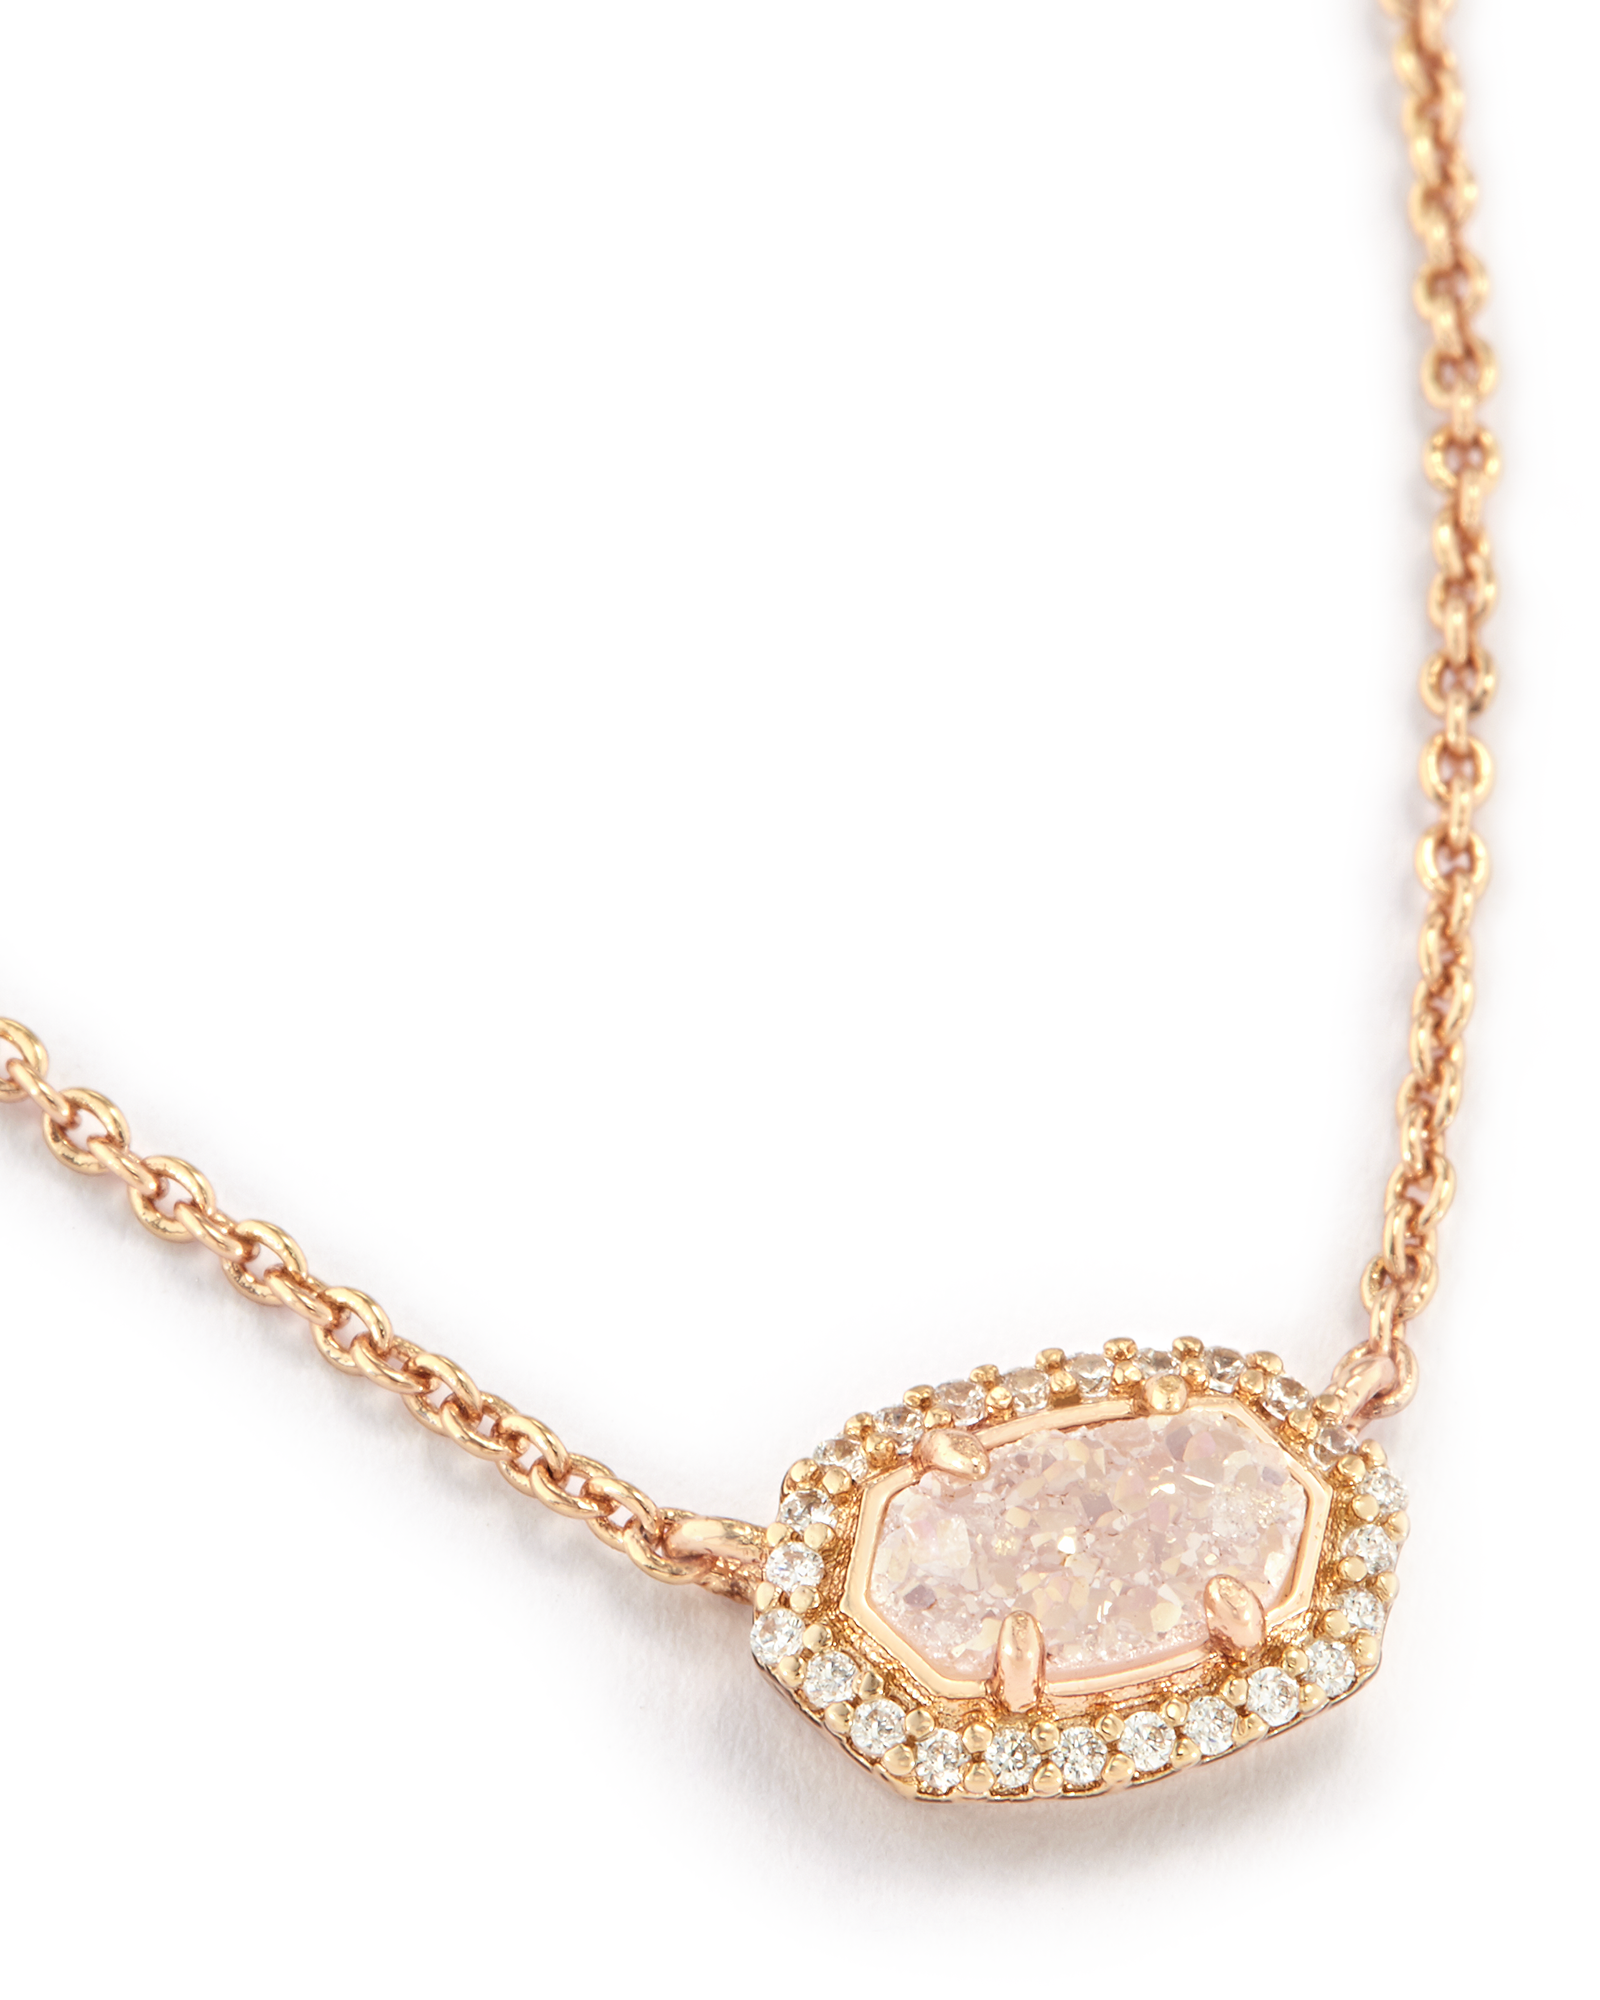 Crystal Jewelry Versus Traditional Jewelry Chelsea Rose and Gold